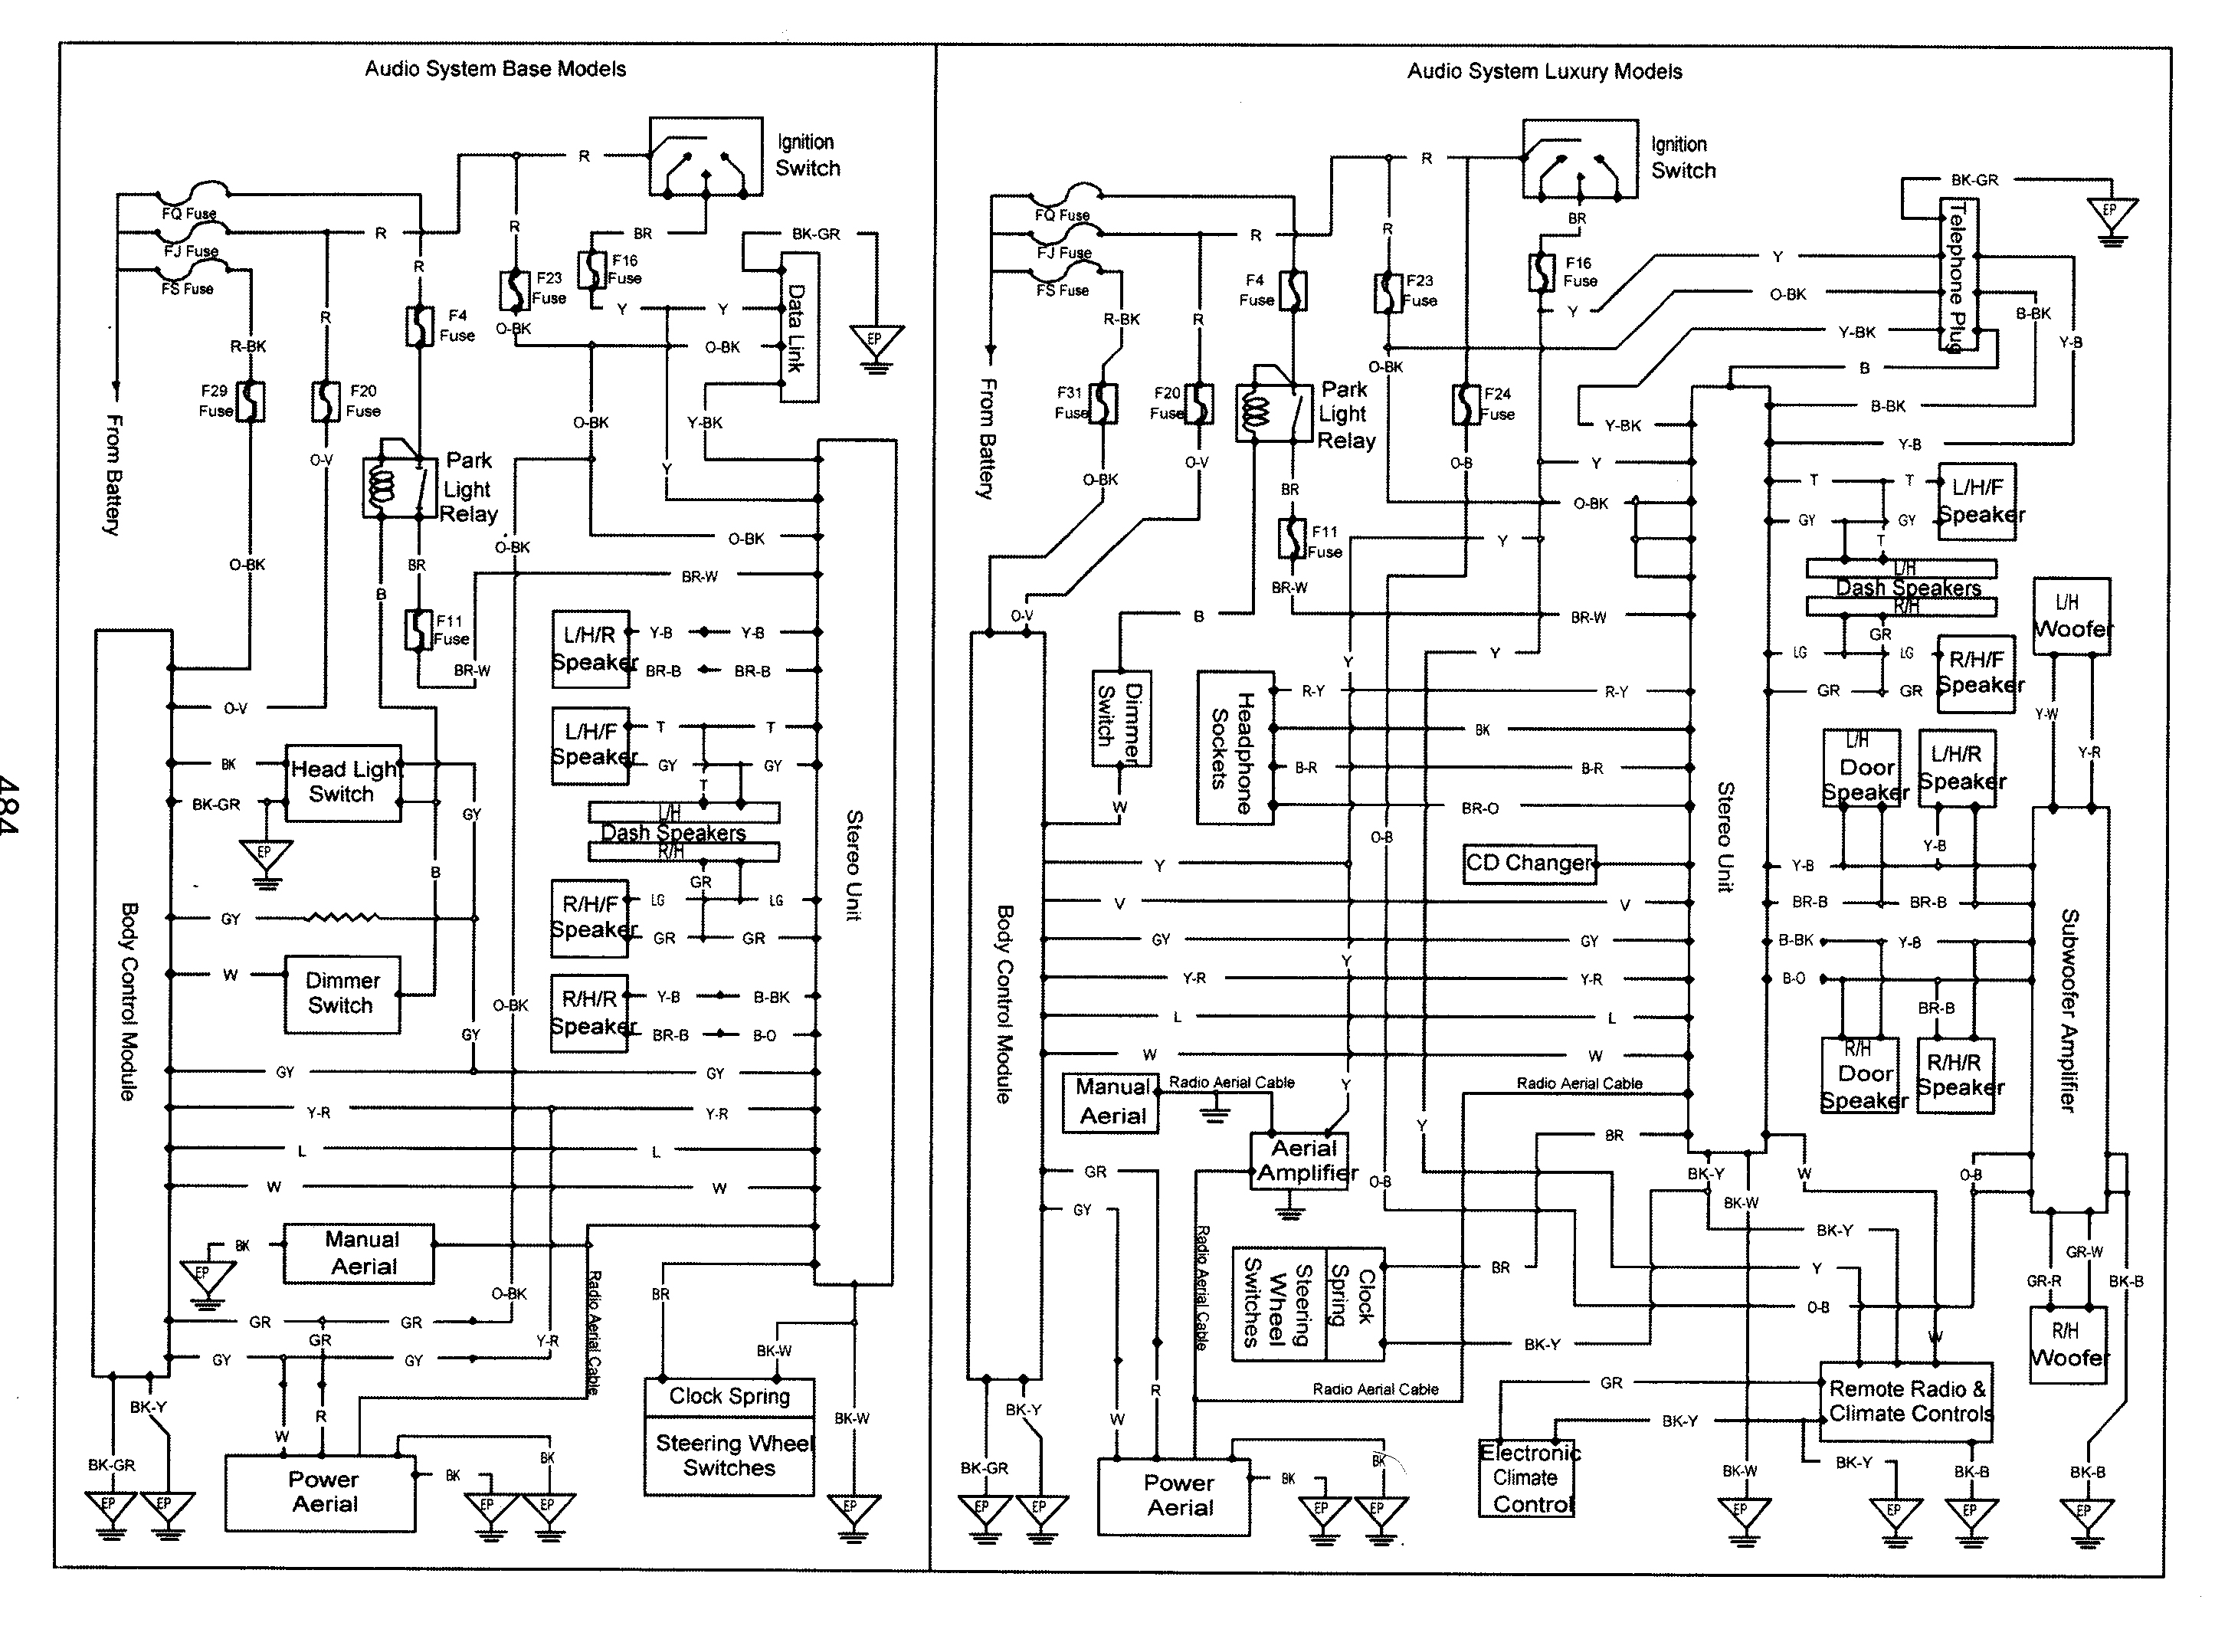 IMG_009?resized665%2C496 vz wiring diagram efcaviation com vz bcm wiring diagram at nearapp.co